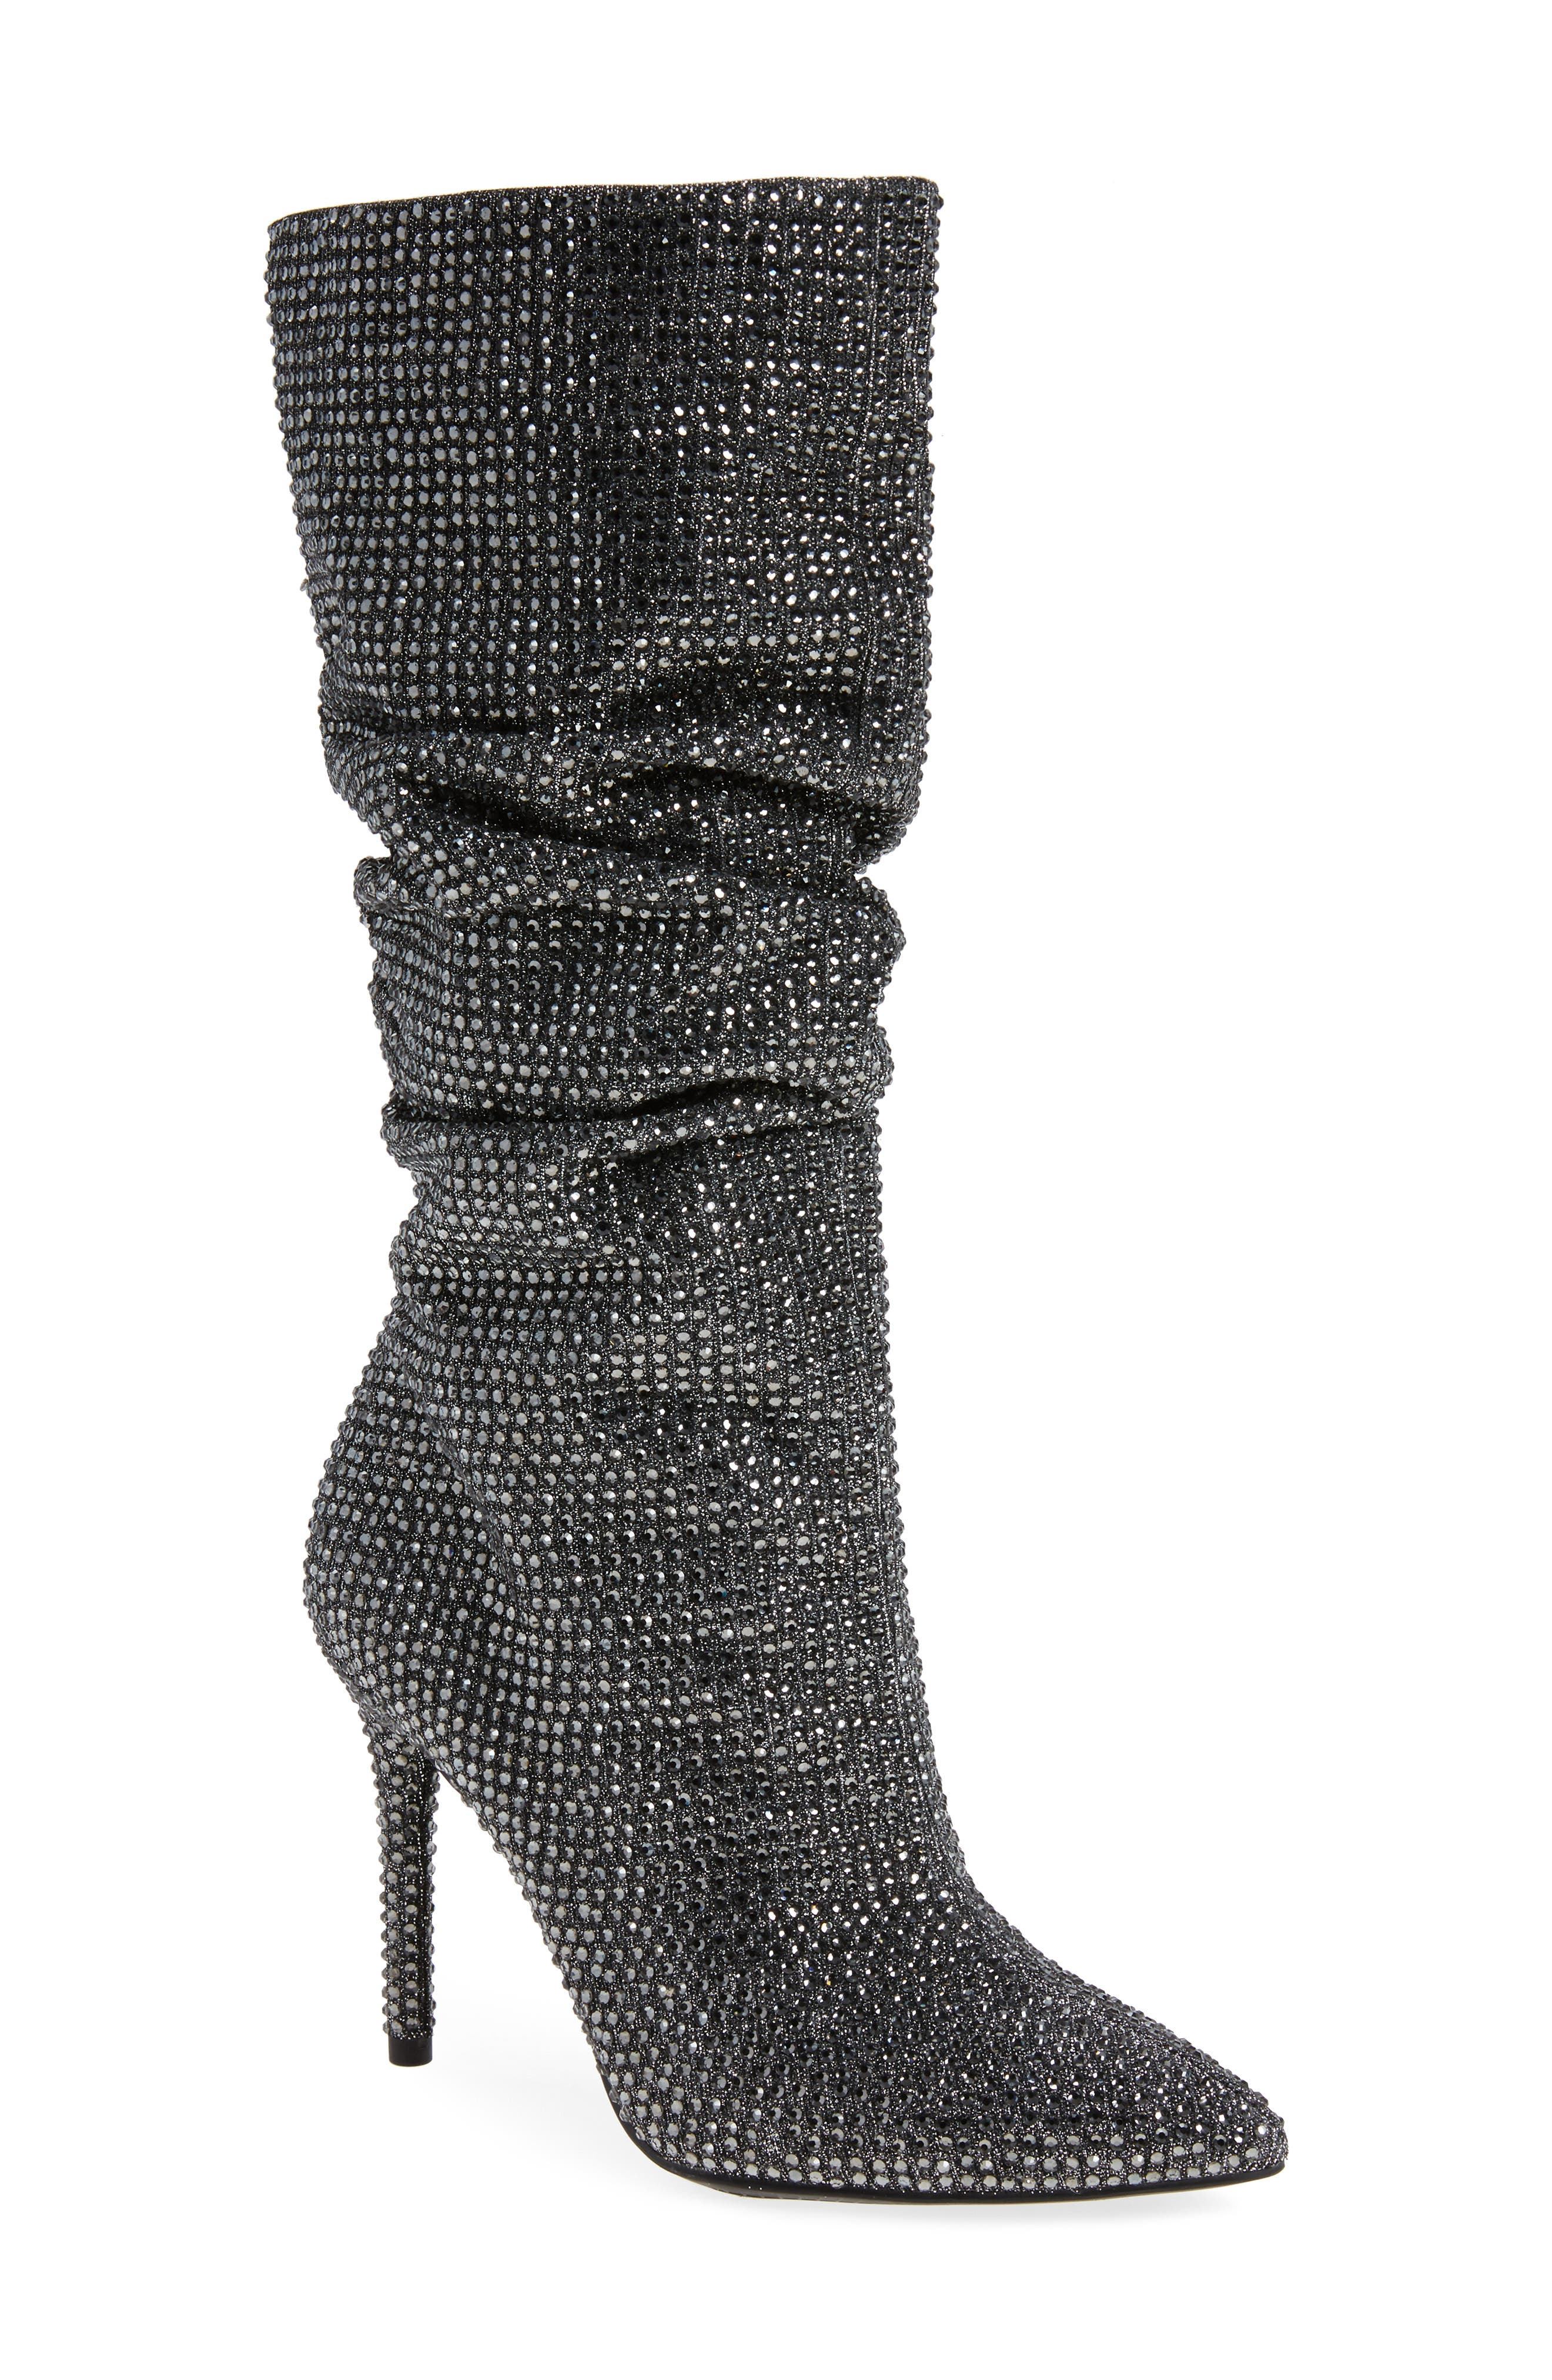 Alternate Image 1 Selected - Jessica Simpson Layzer Embellished Slouch Boot (Women)